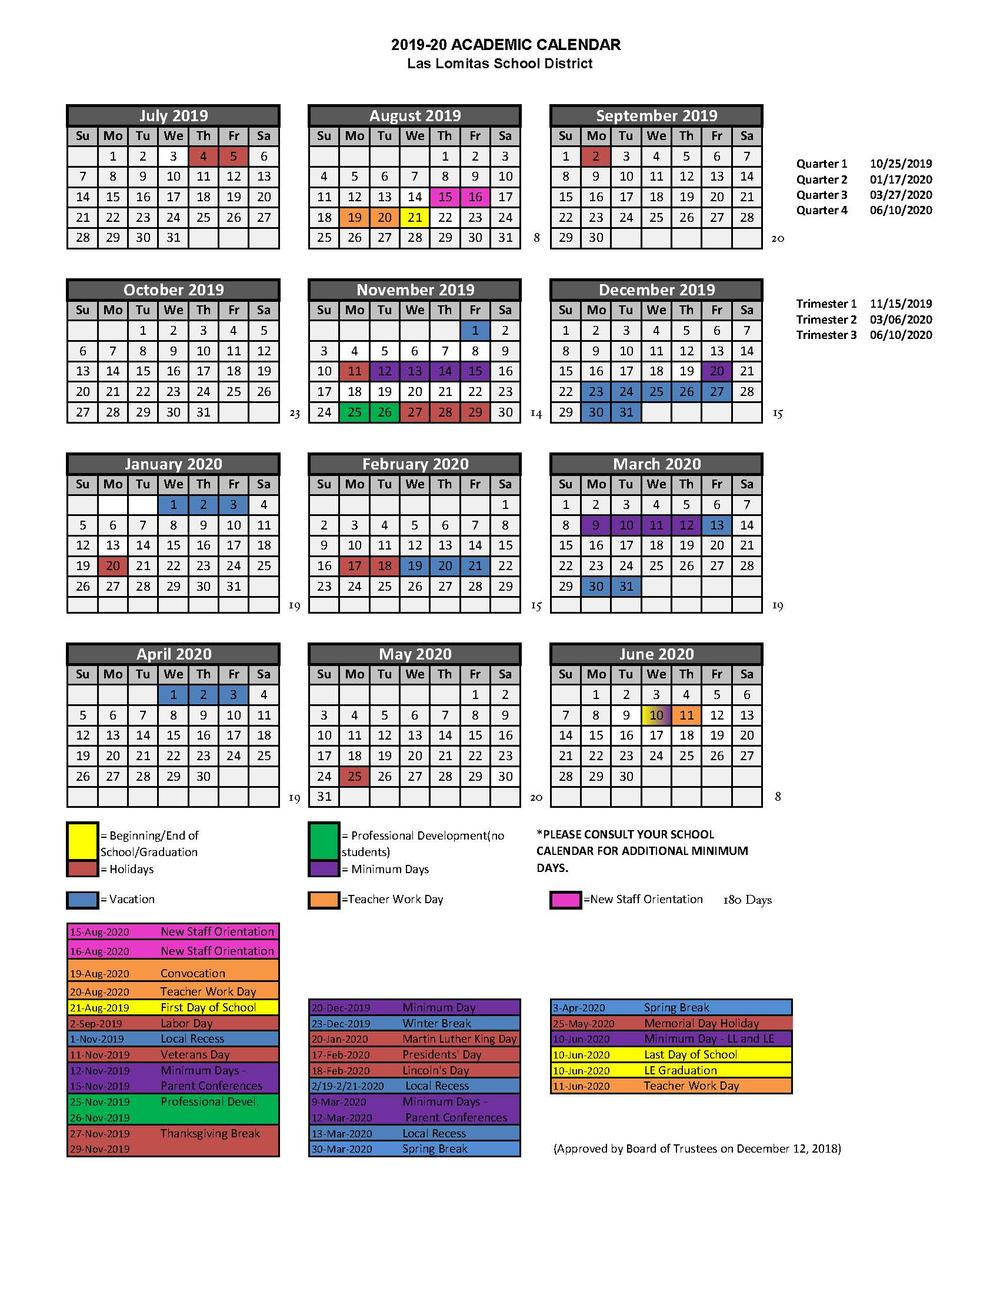 Uc Berkeley Academic Calendar 2020-21 Calendars